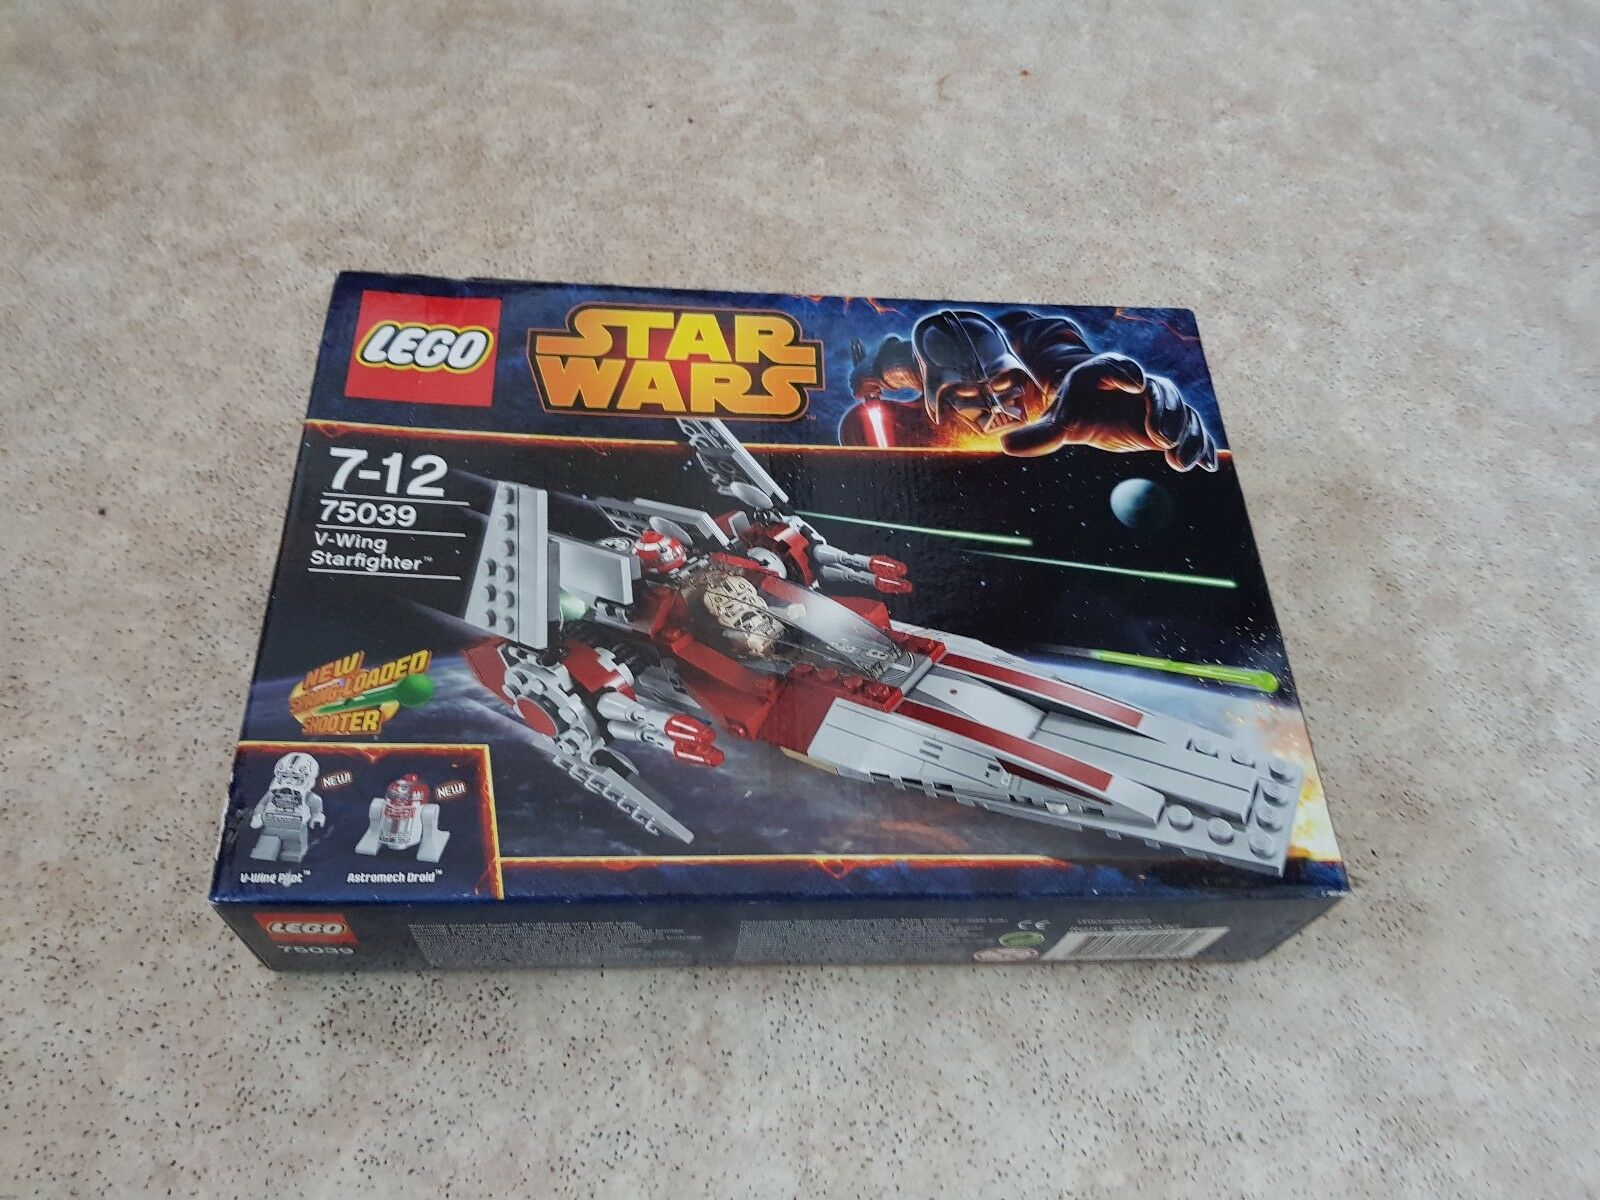 Lego 75039 Star Wars V-Wing Starfighter - Retired Set - Brand New and Sealed